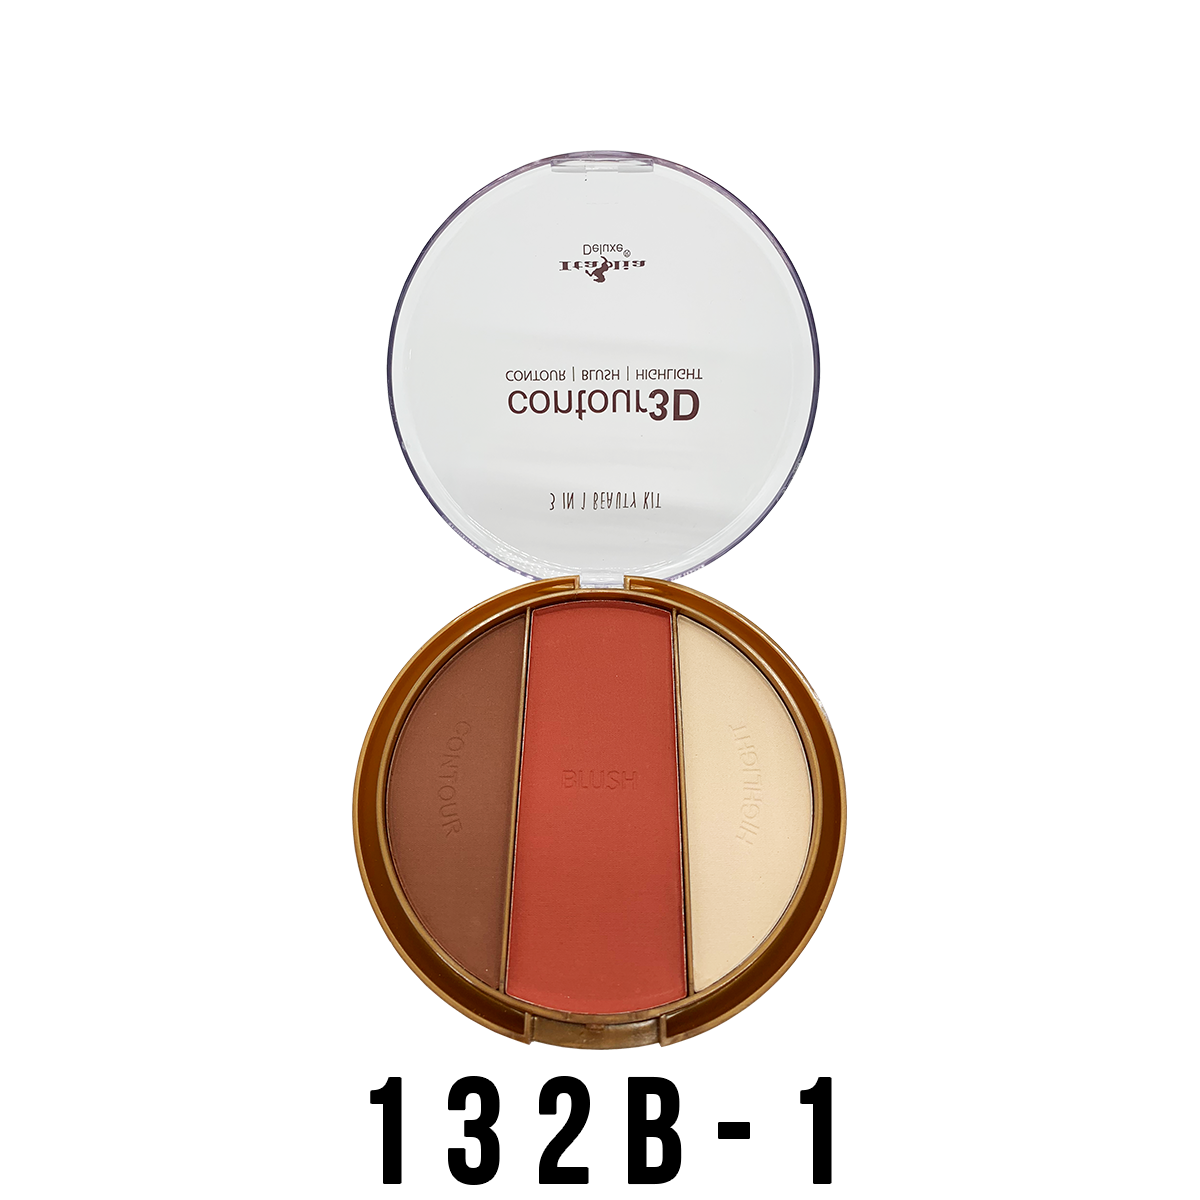 3D Contour Blush & Highlight Sets A & B